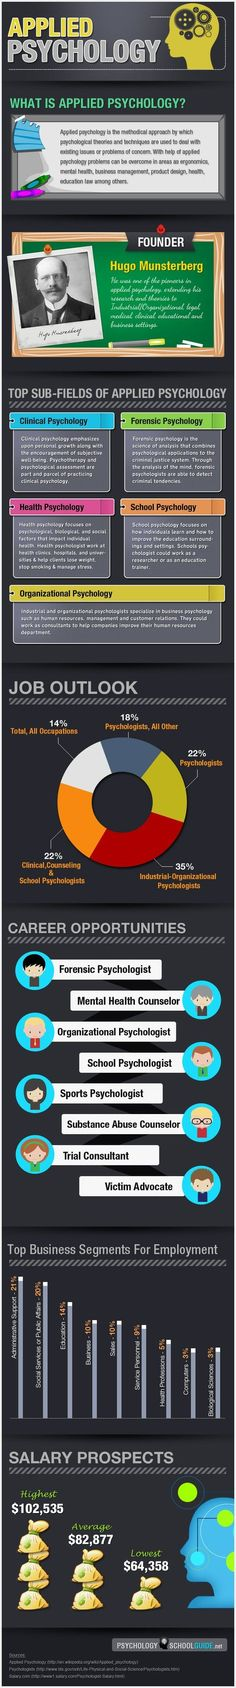 Applied Psychology Infographic